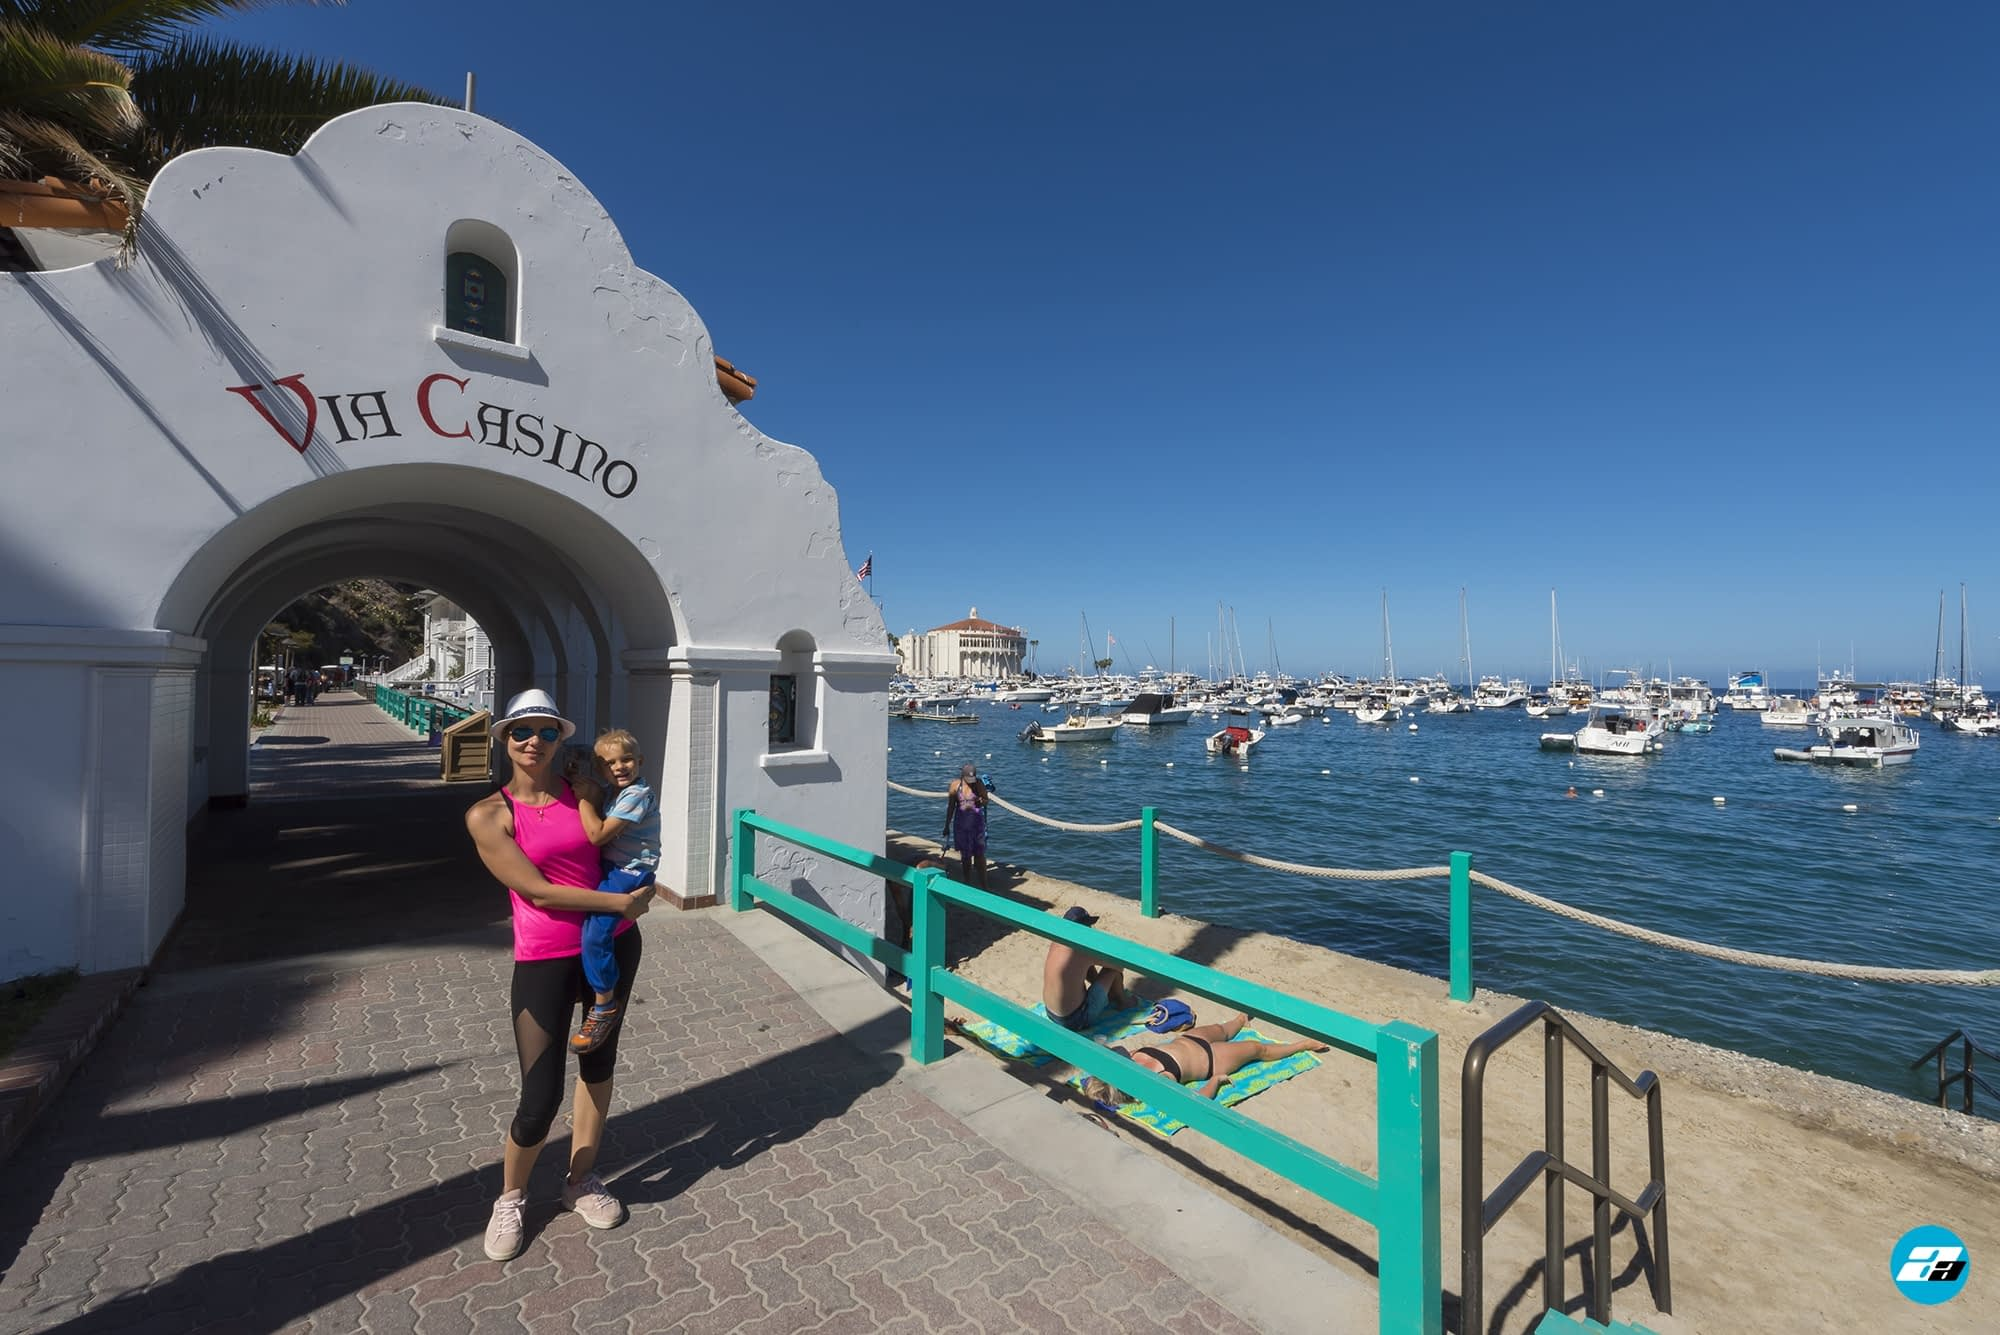 Catalina Island, Chanel Islands National Park, California, Casino View. Pier View. Small Beach. Mother and son. Family.